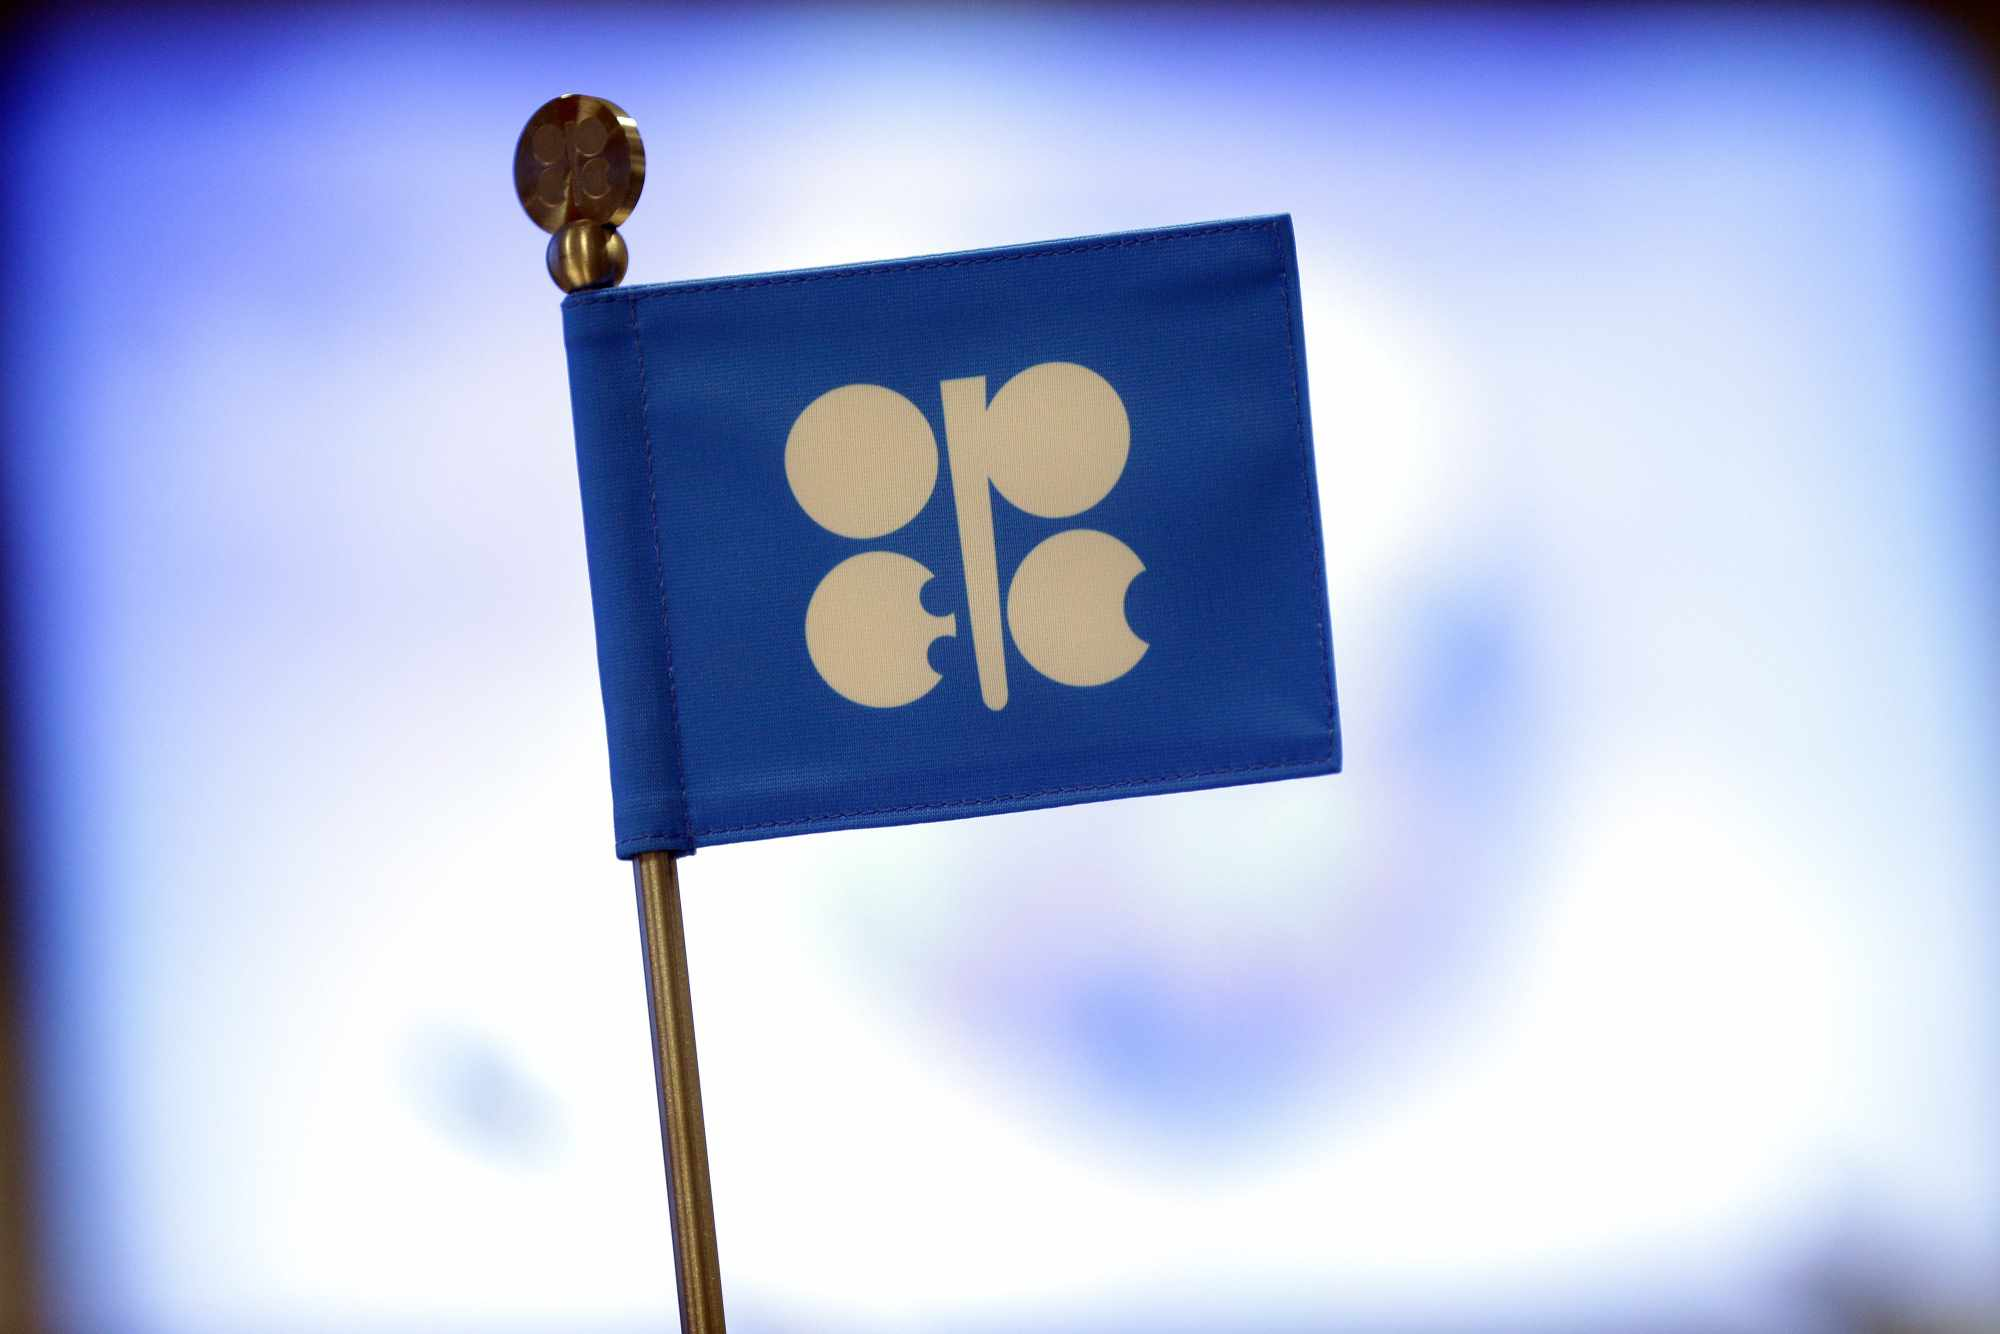 opec oil production output boost